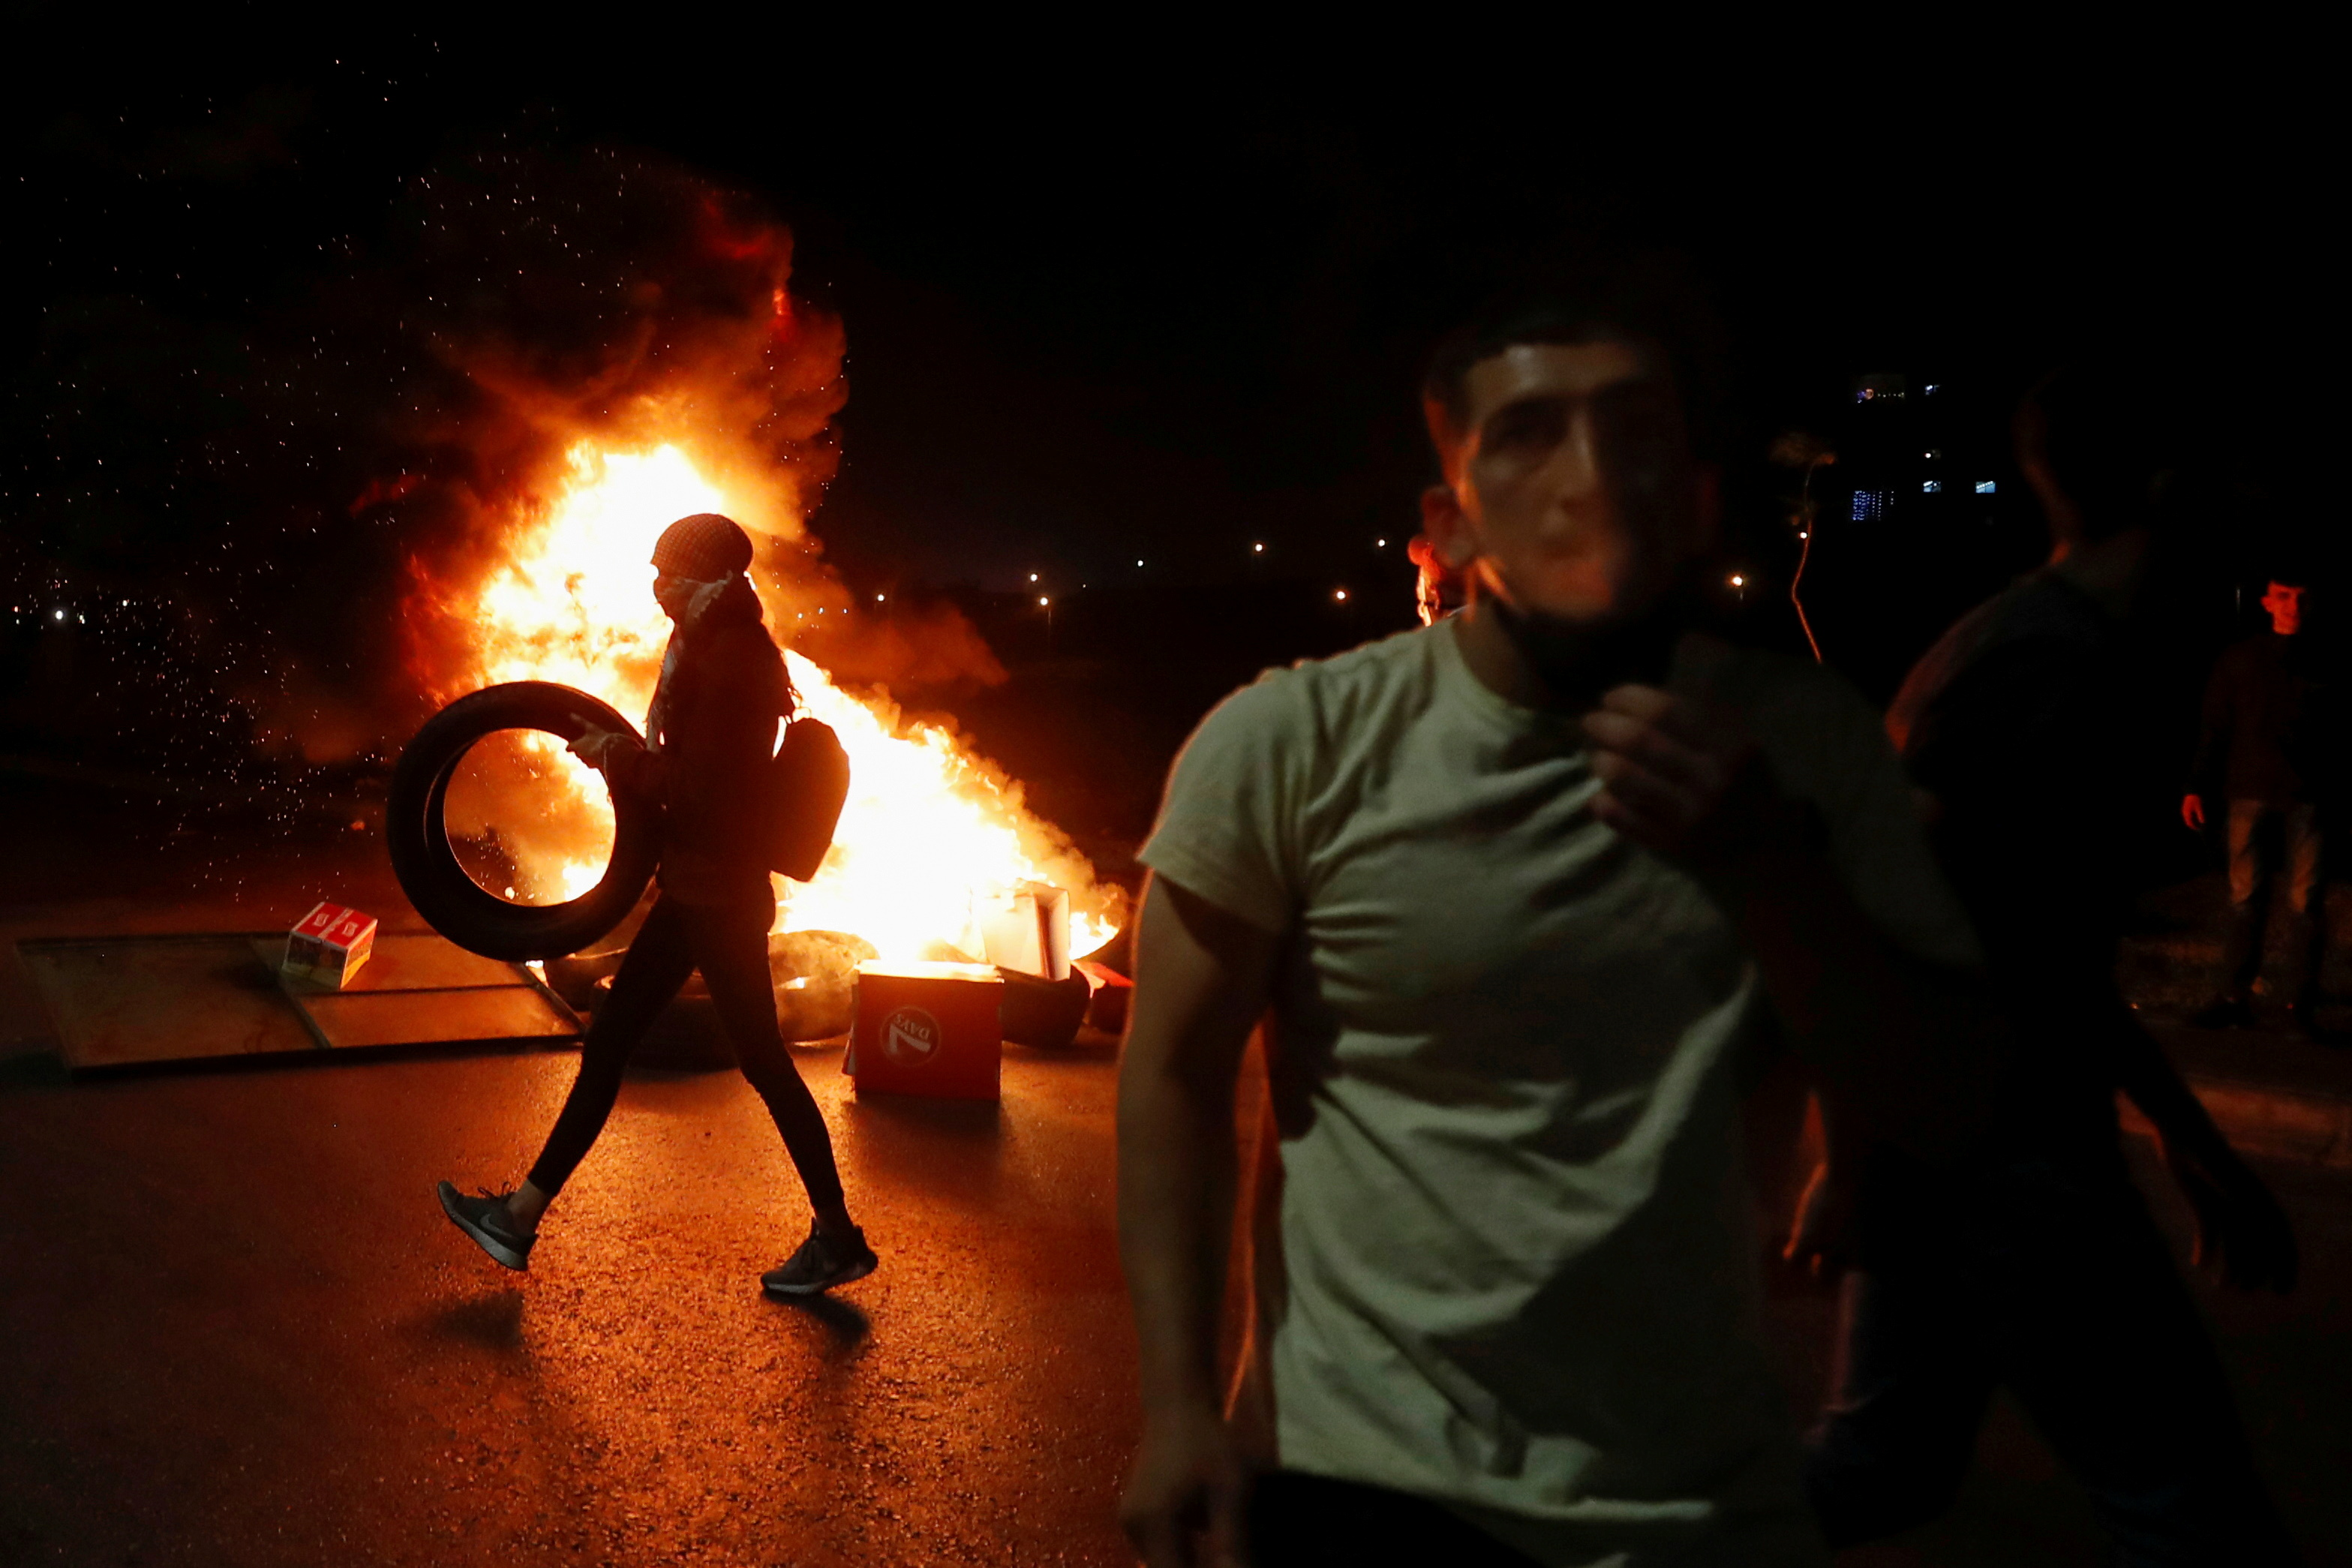 A Palestinian woman demonstrator carries a tire as she walks past a burning barricade during an anti-Israel protest over tension in Jerusalem, near the Jewish settlement of Beit El near Ramallah, in the Israeli-occupied West Bank May 9, 2021. REUTERS/Mohamad Torokman